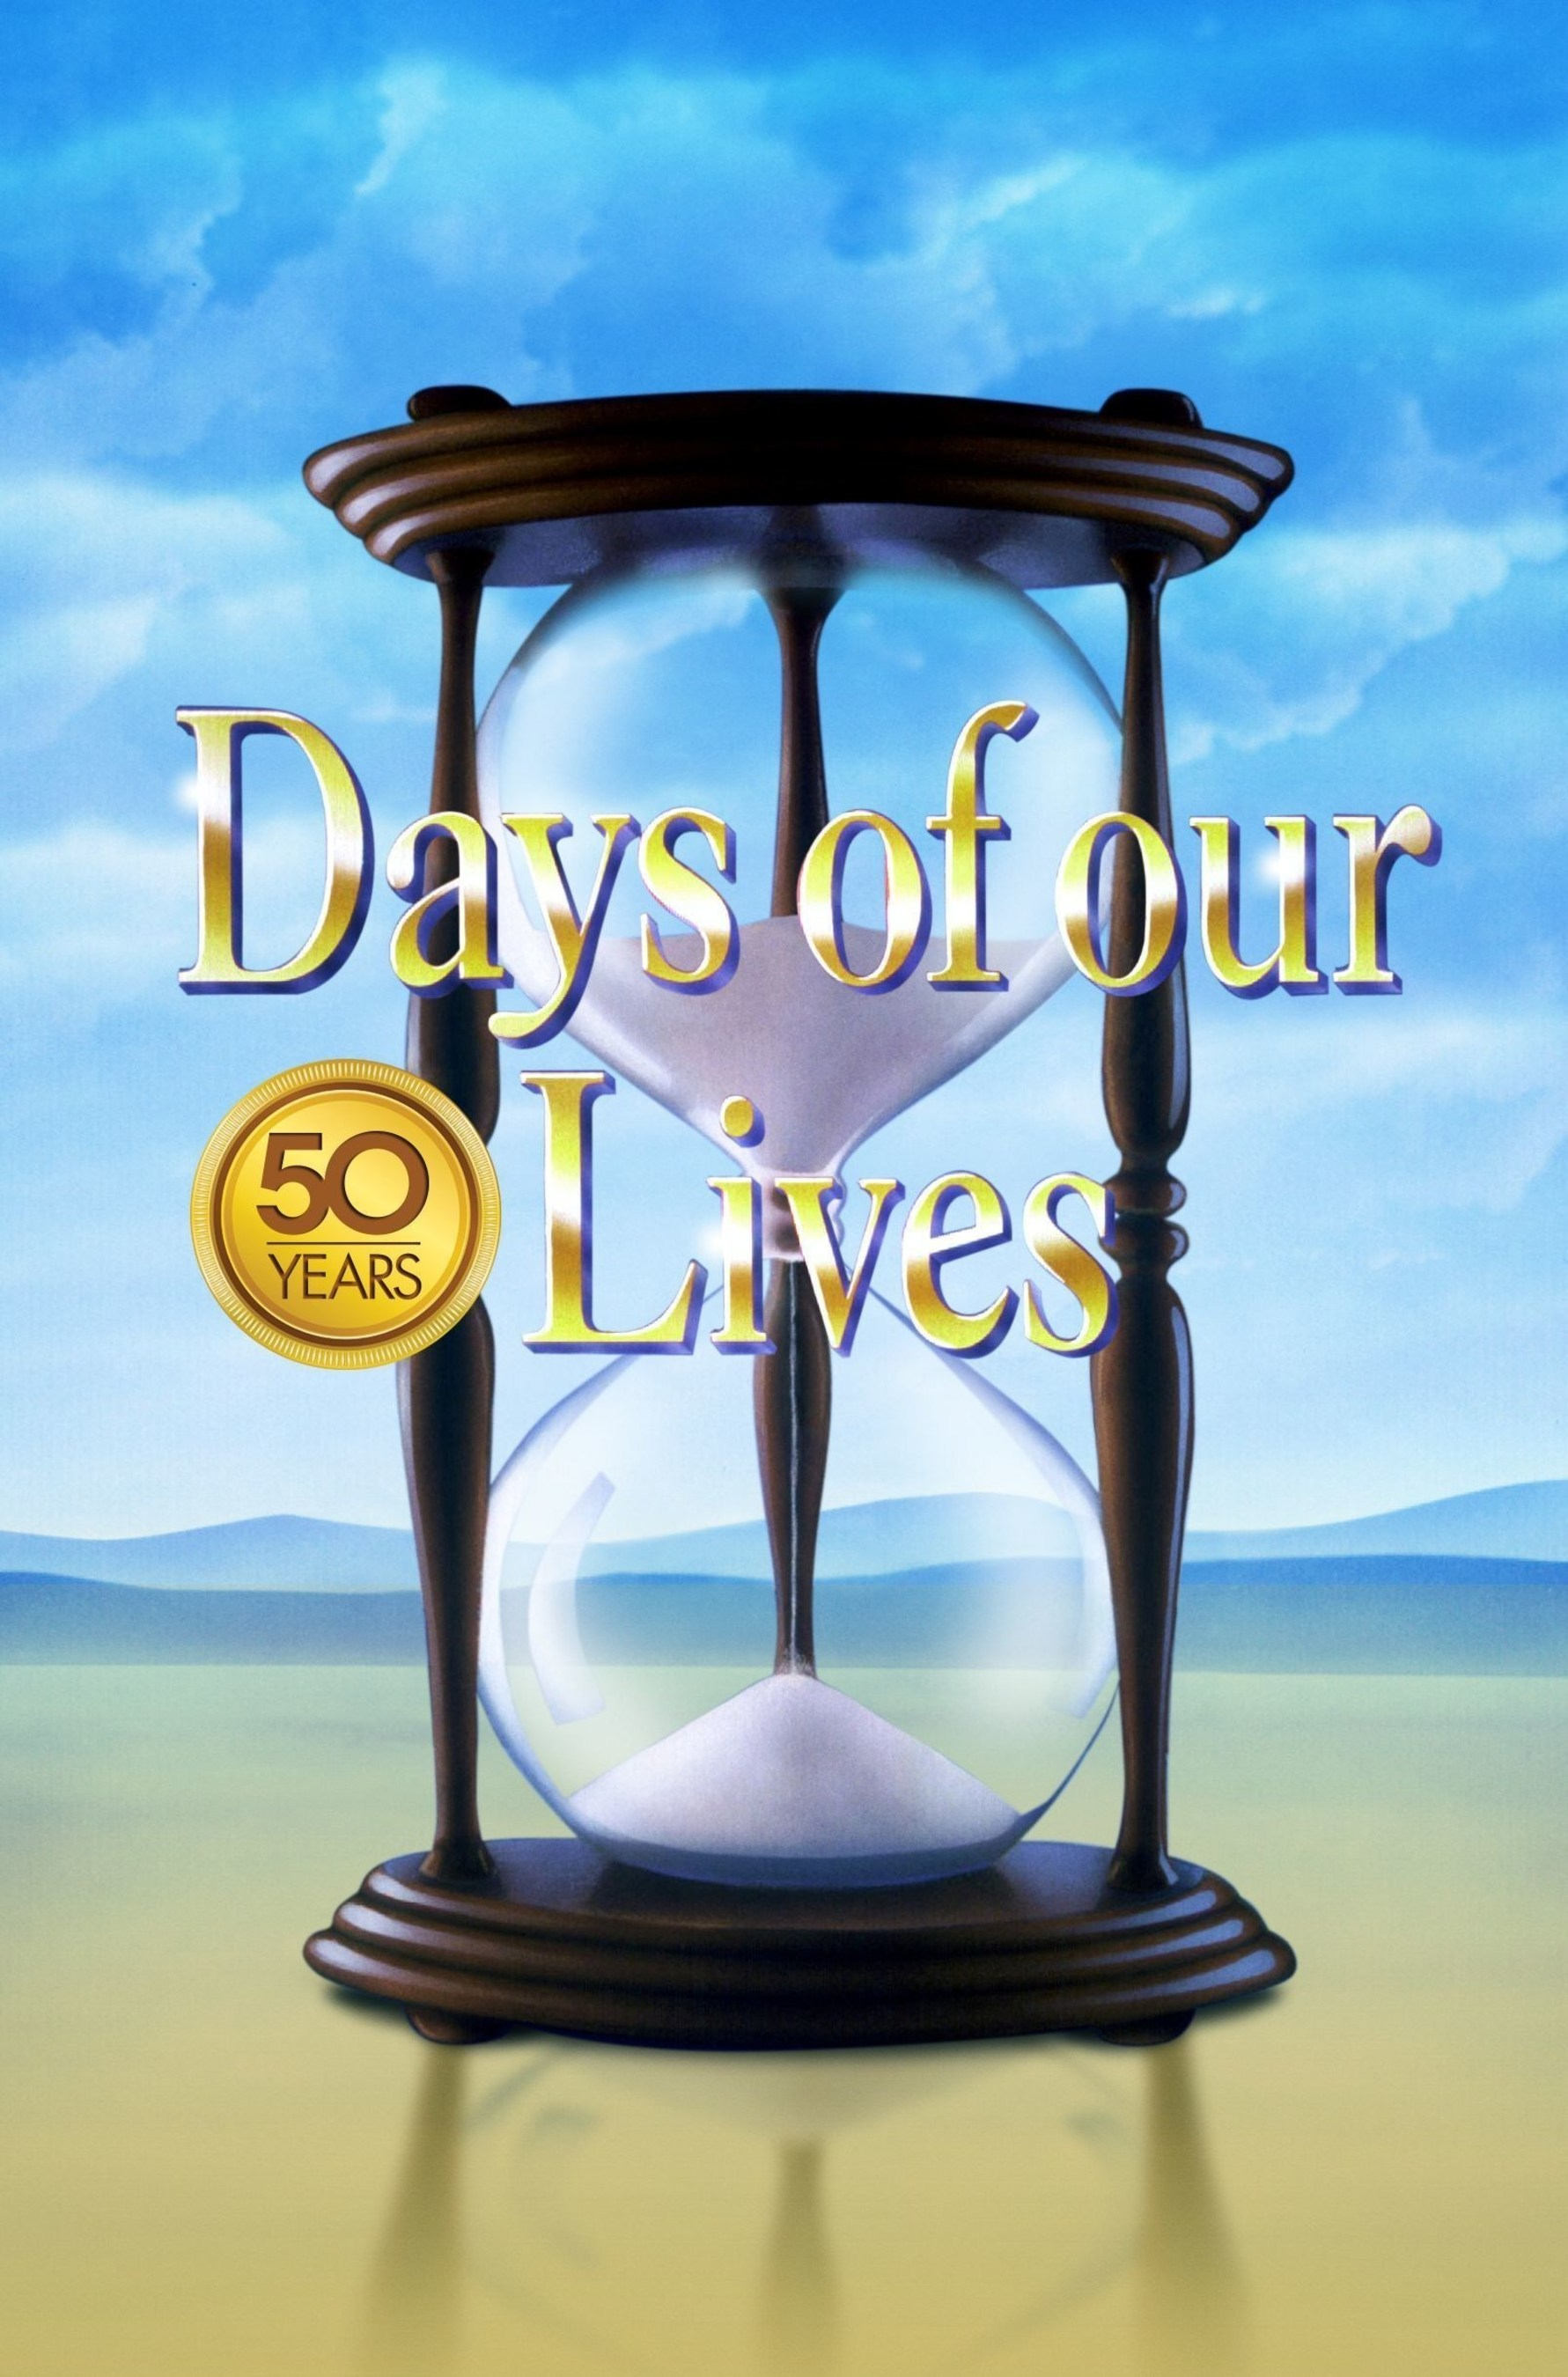 Days of our Lives celebrates 50 years.